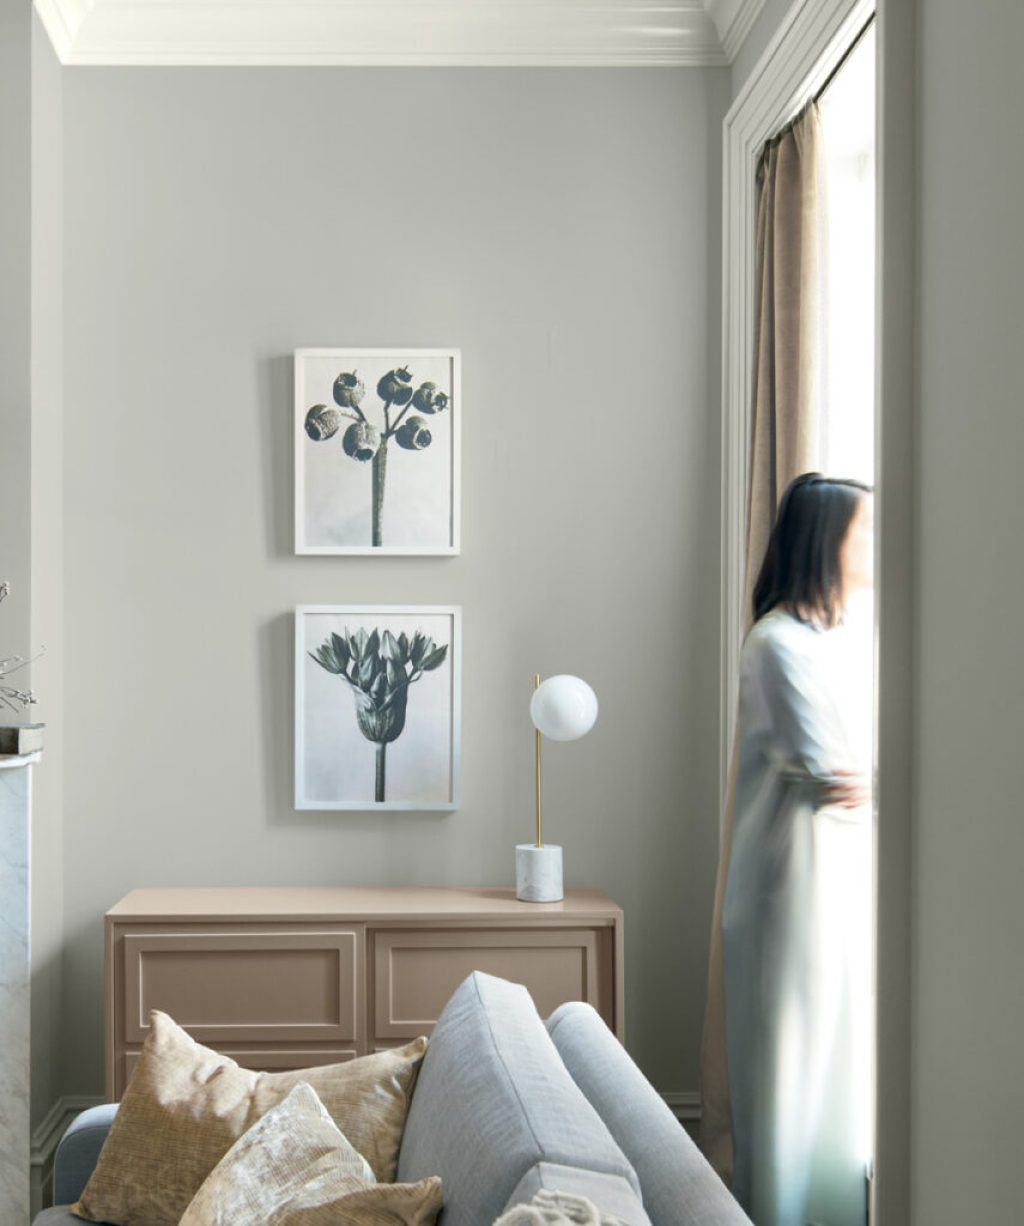 Calm, composed and effortlessly sophisticated, Benjamin Moore's Color of the Year 2019, Metropolitan AF-690, exudes glamour, beauty and balance.